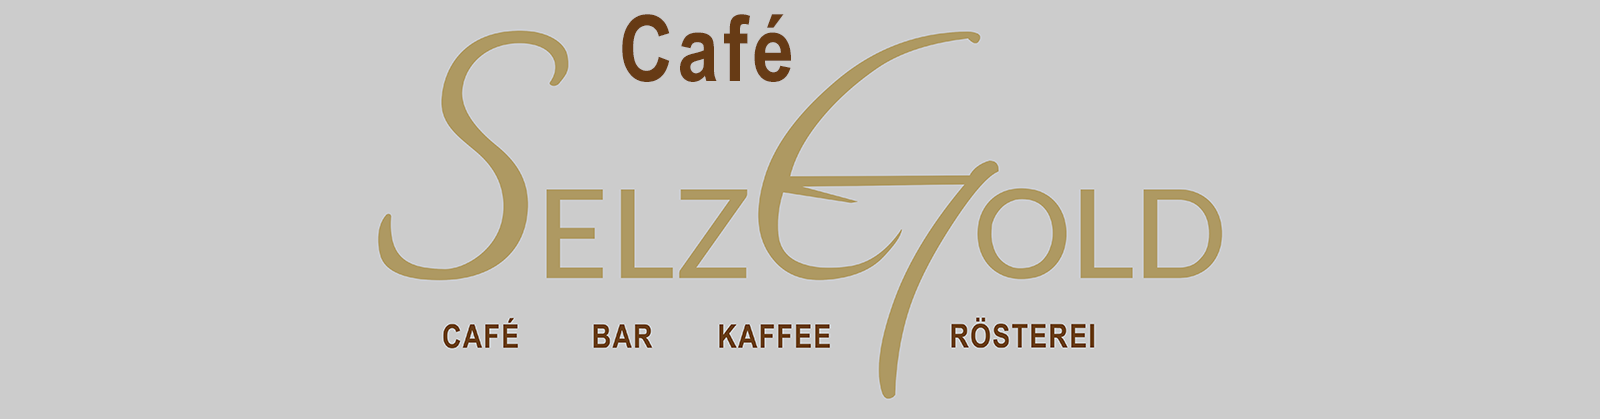 cafe-selzgold-alzey